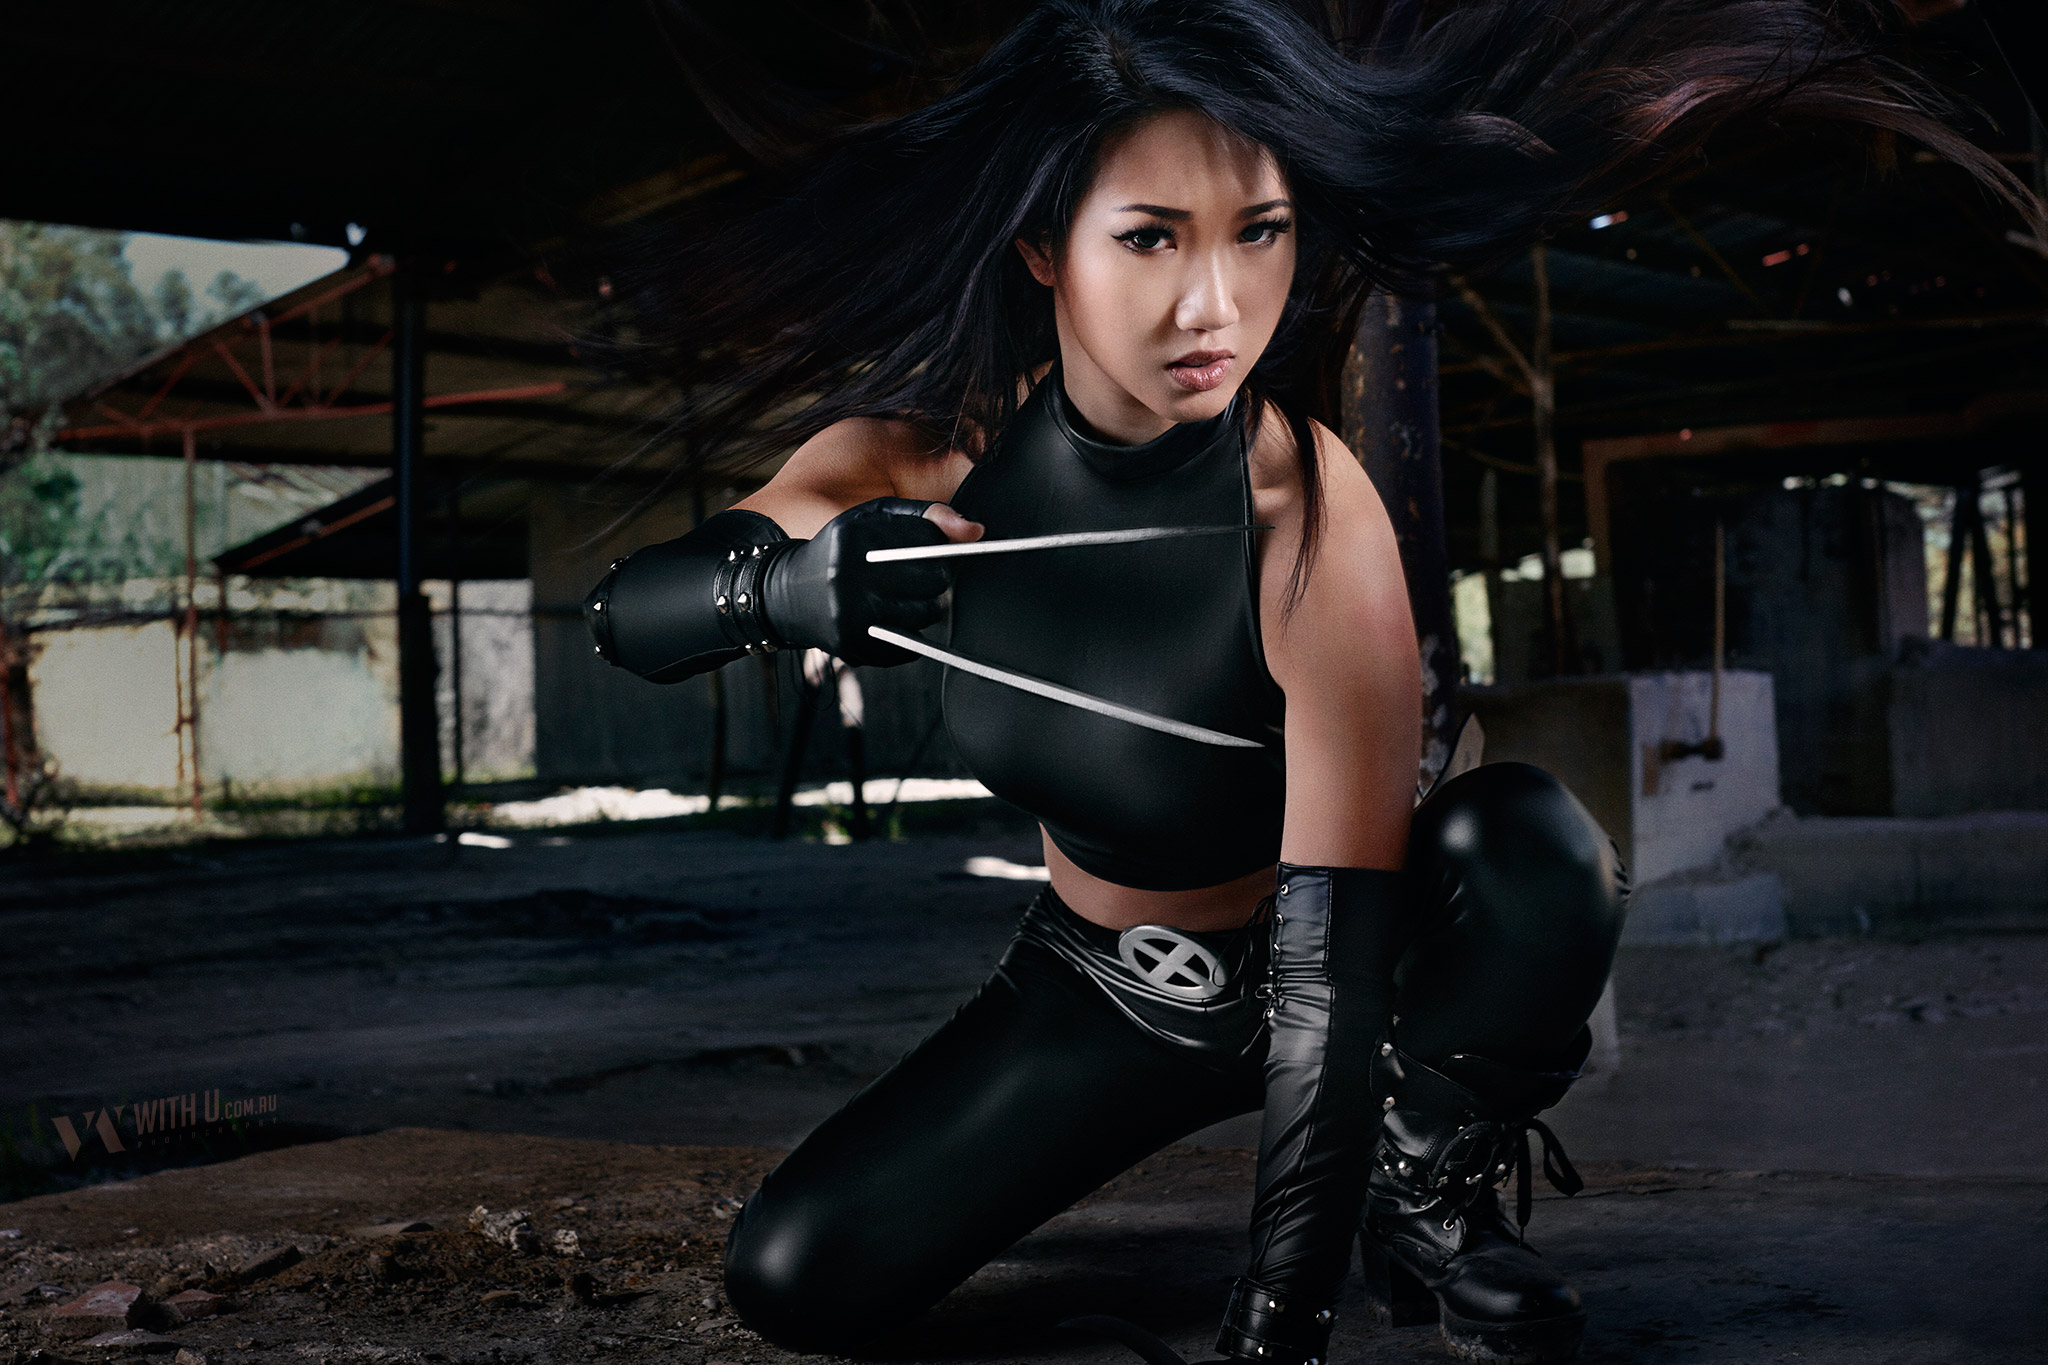 X-23-Perth-portraits-Cosplay-Withu-Photography-03-small